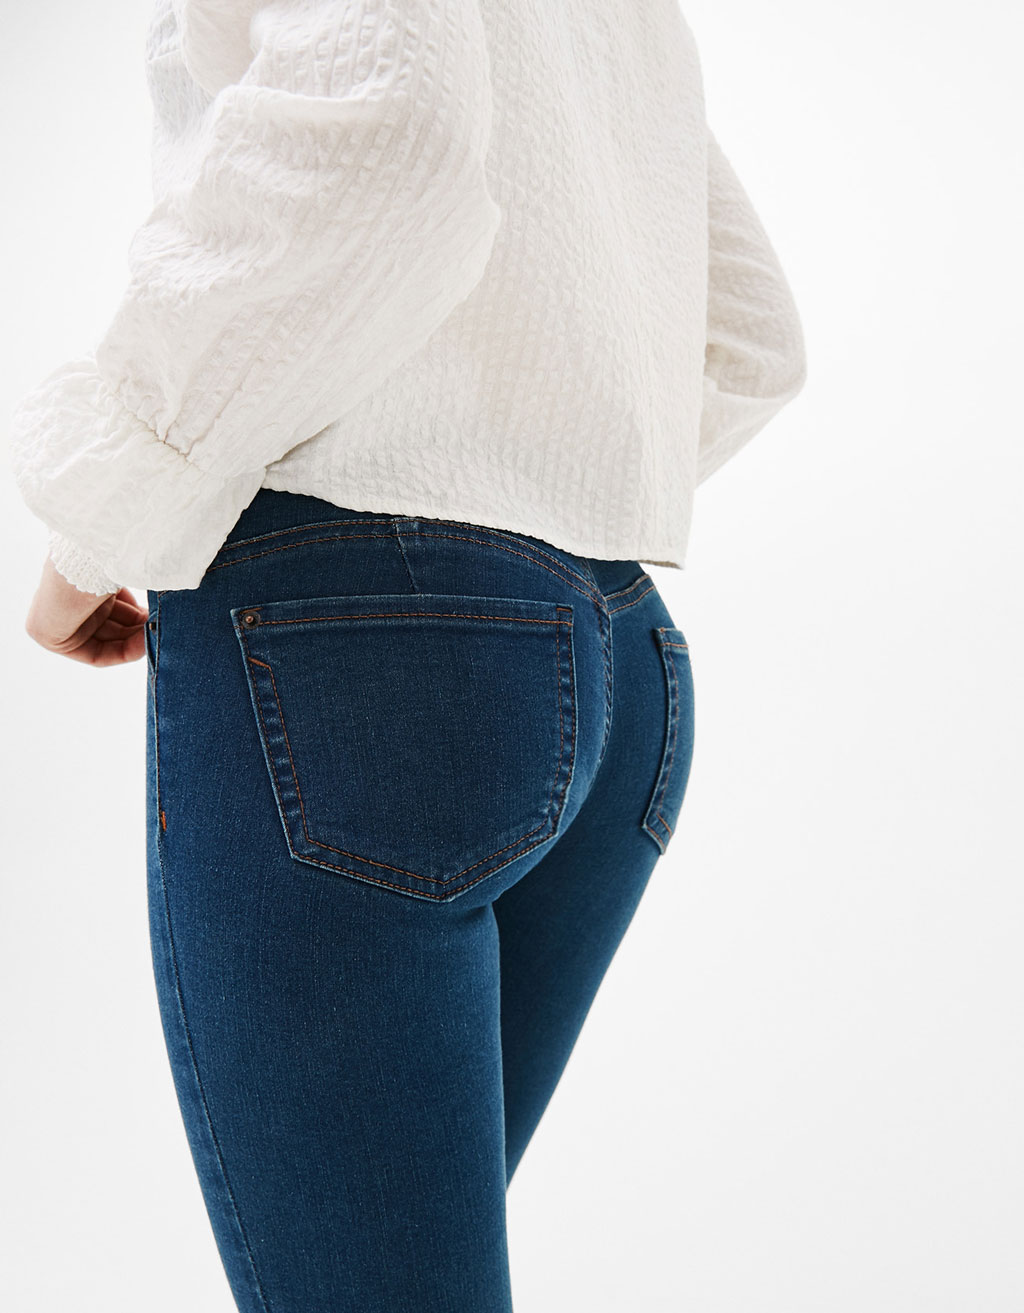 BSK push up jeans